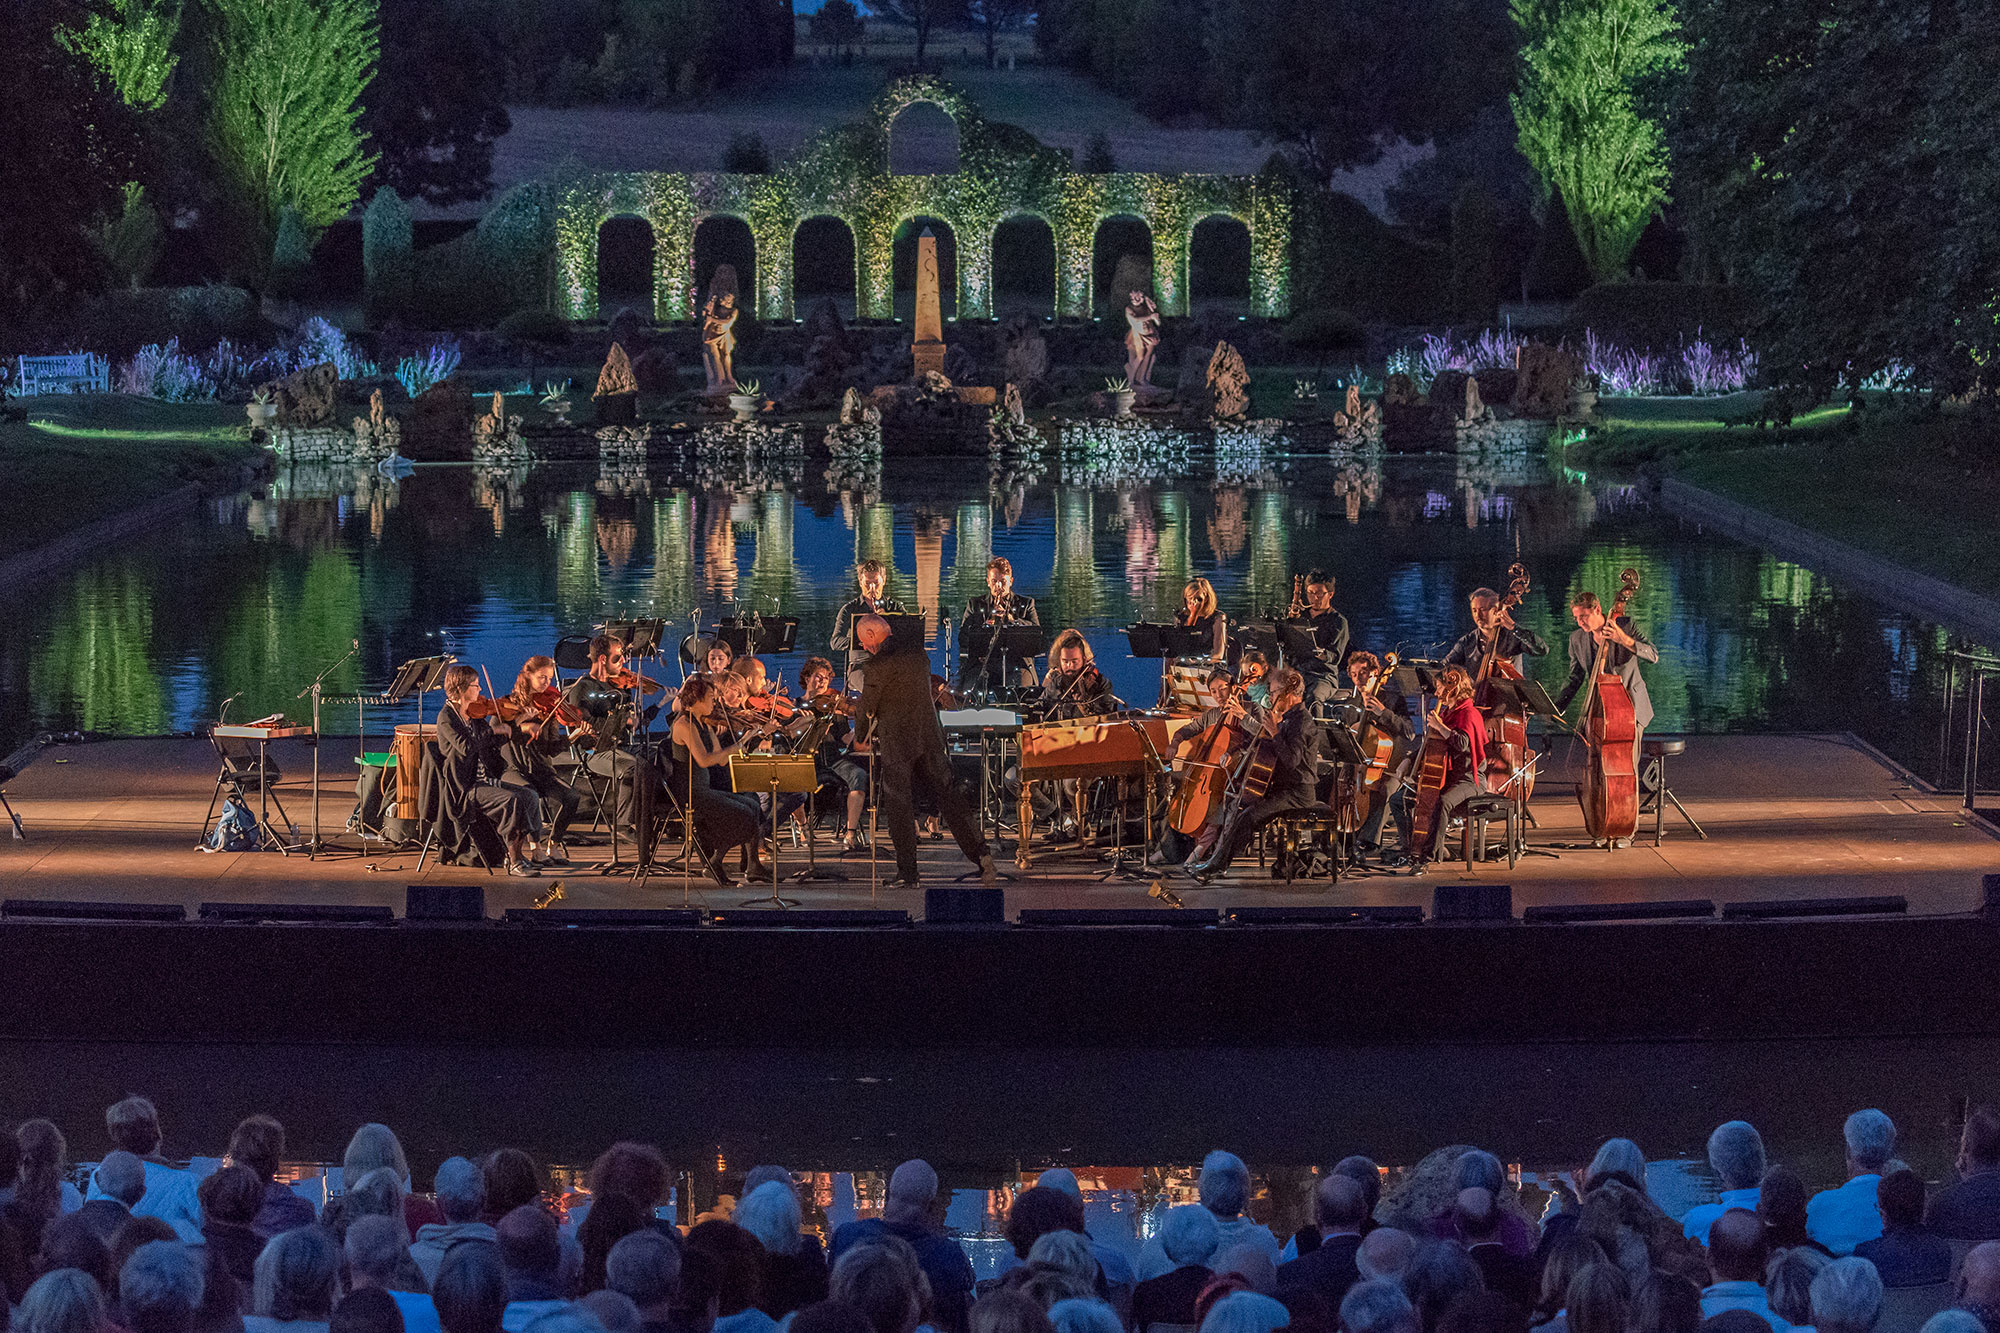 Festival Dans Les Jardins de William Christie 2018